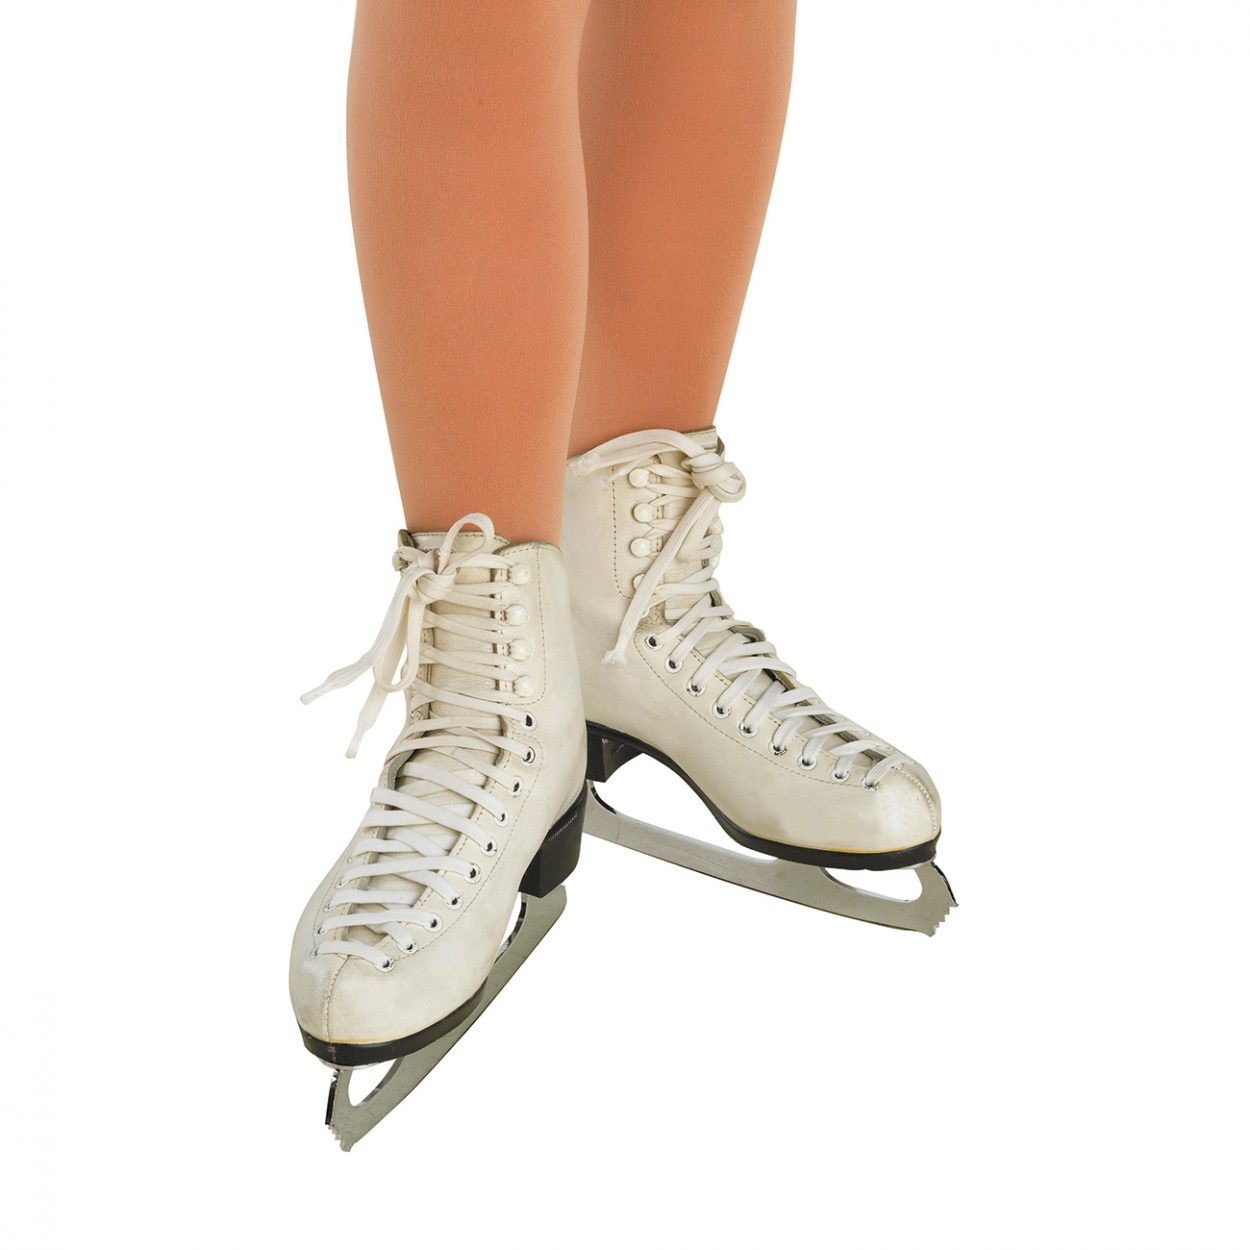 Full Footed Skating Tights by Tappers and Pointers